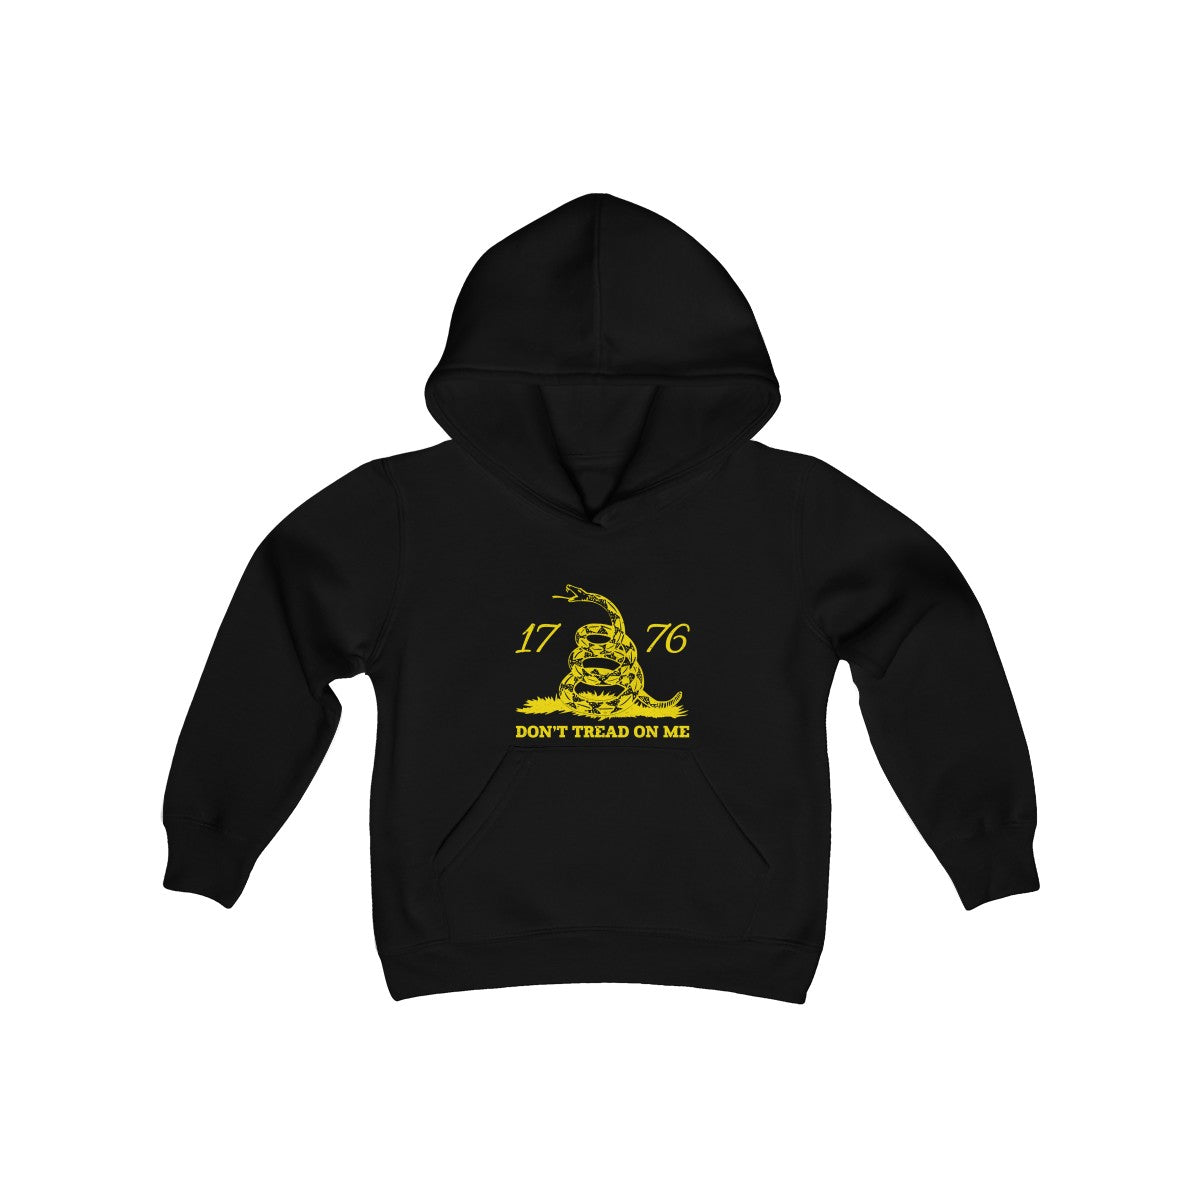 Don't Tread on Me Youth Heavy Blend Hooded Sweatshirt